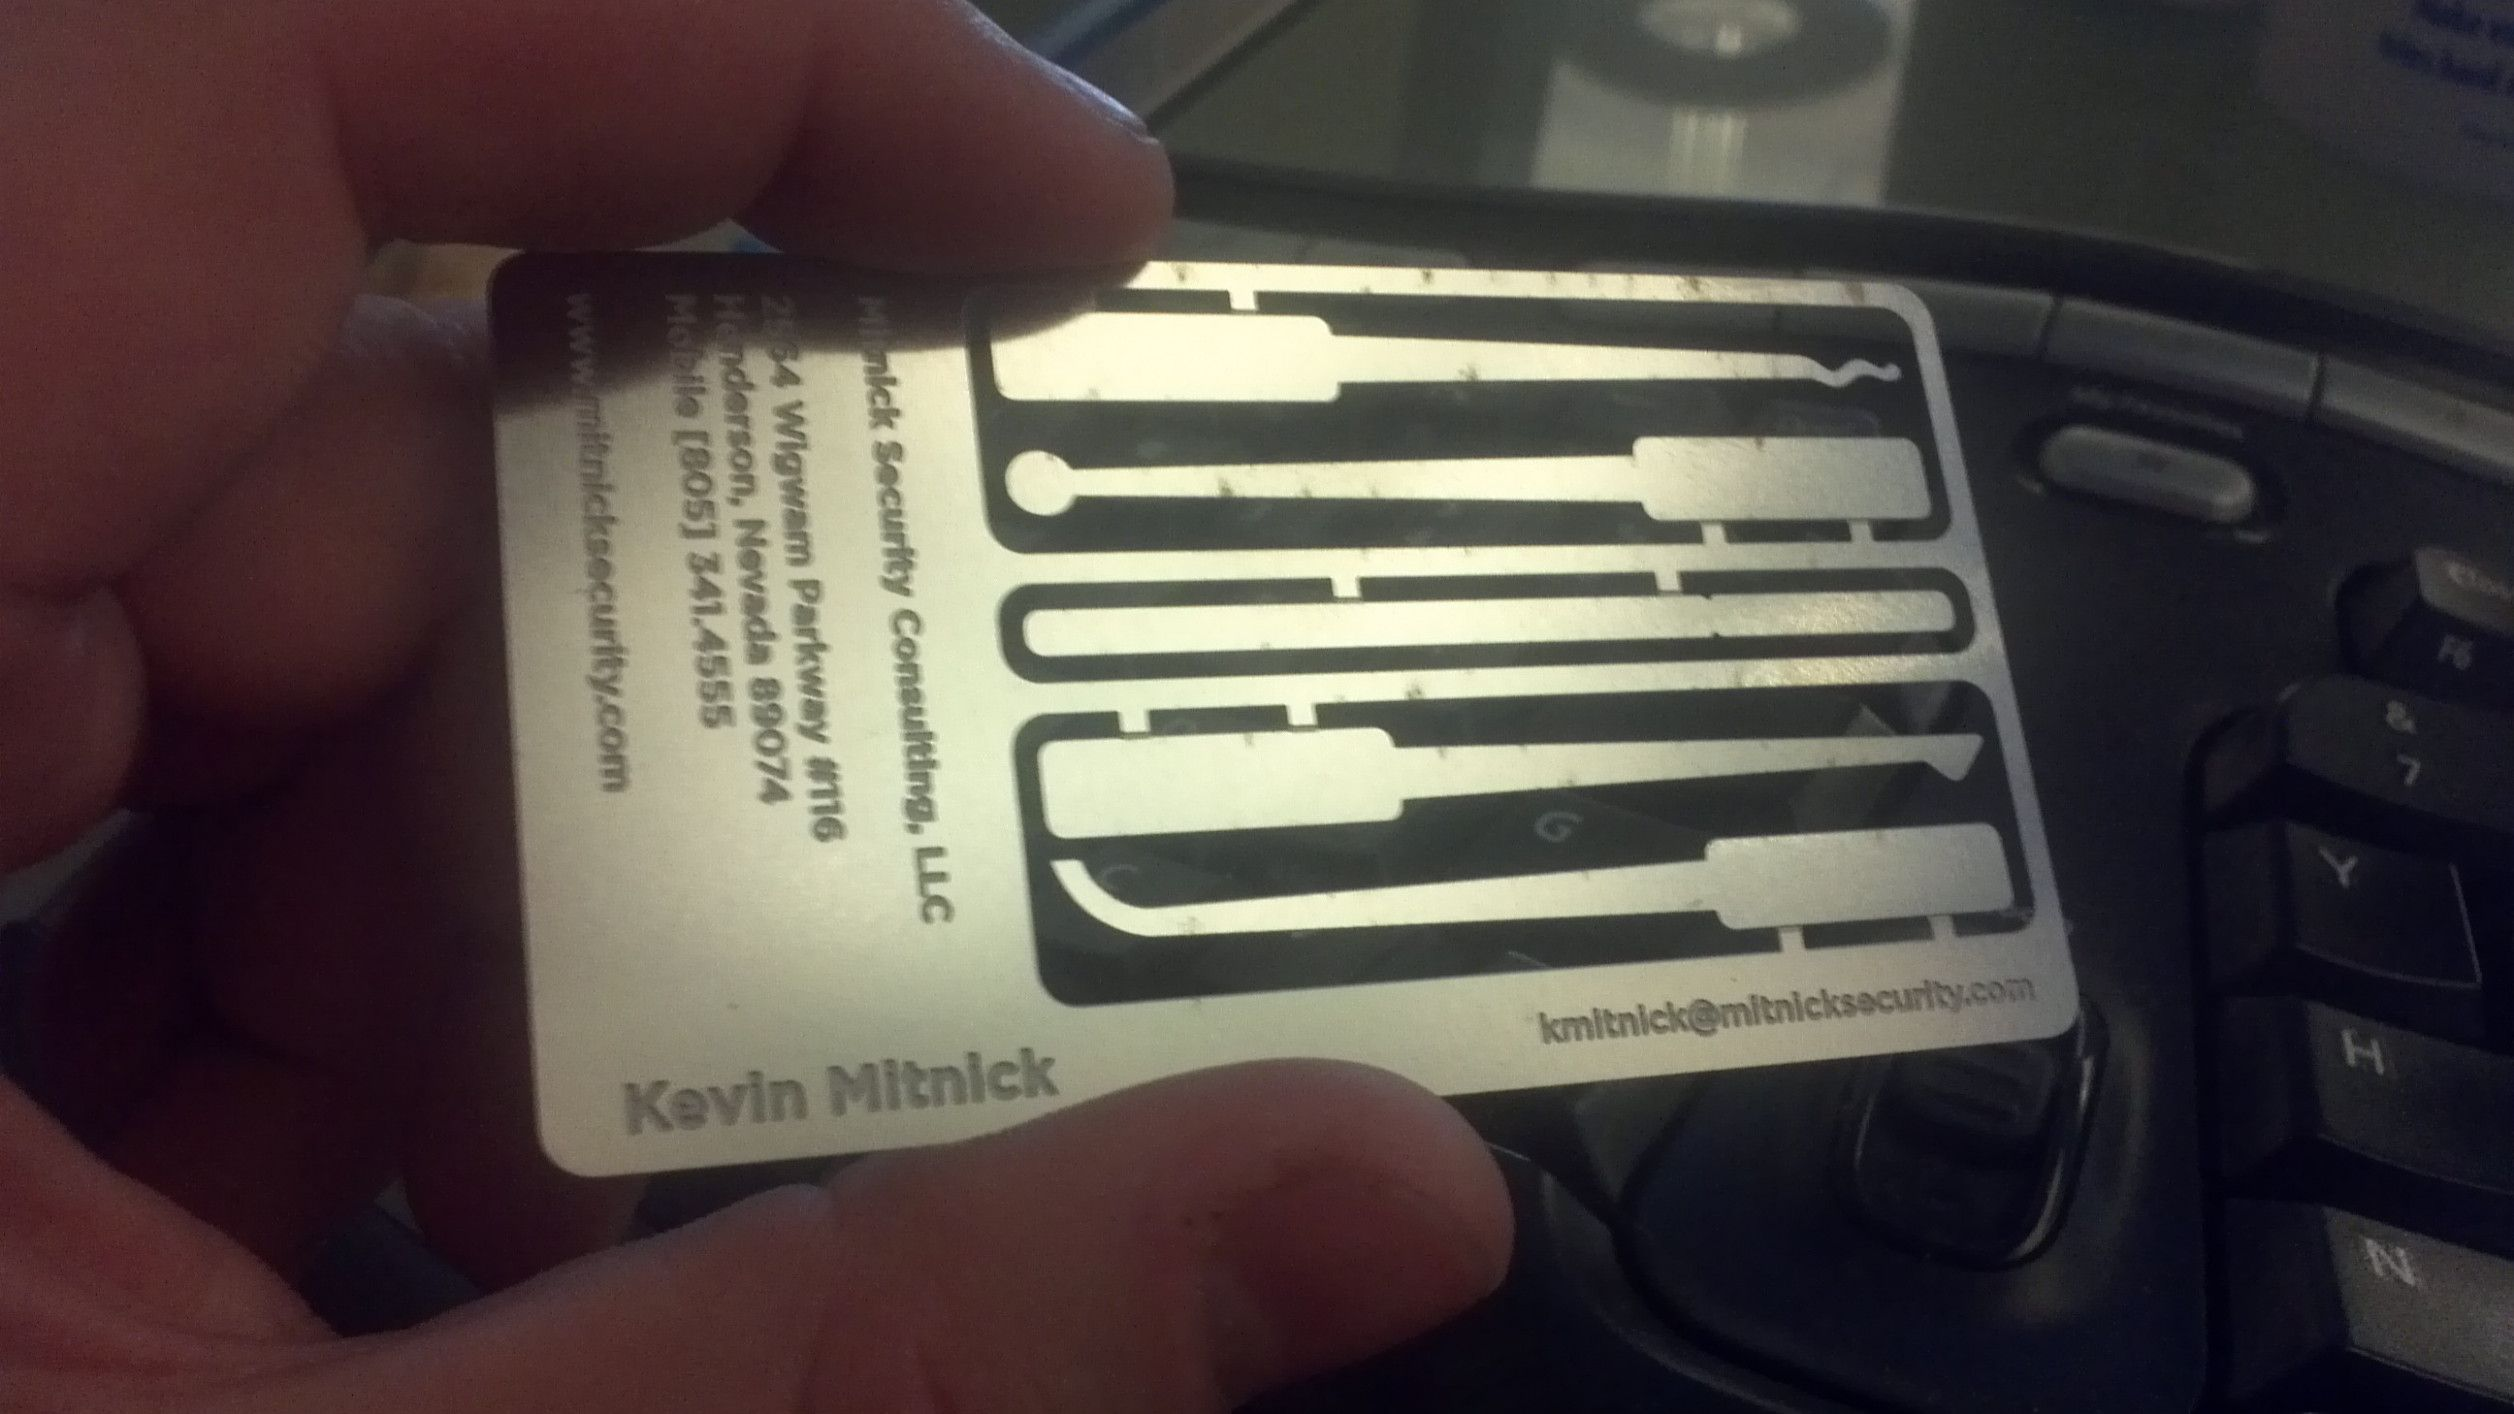 Kevin Mitnick Business Card In 2020 Photo Business Cards Engineering Challenge Cards